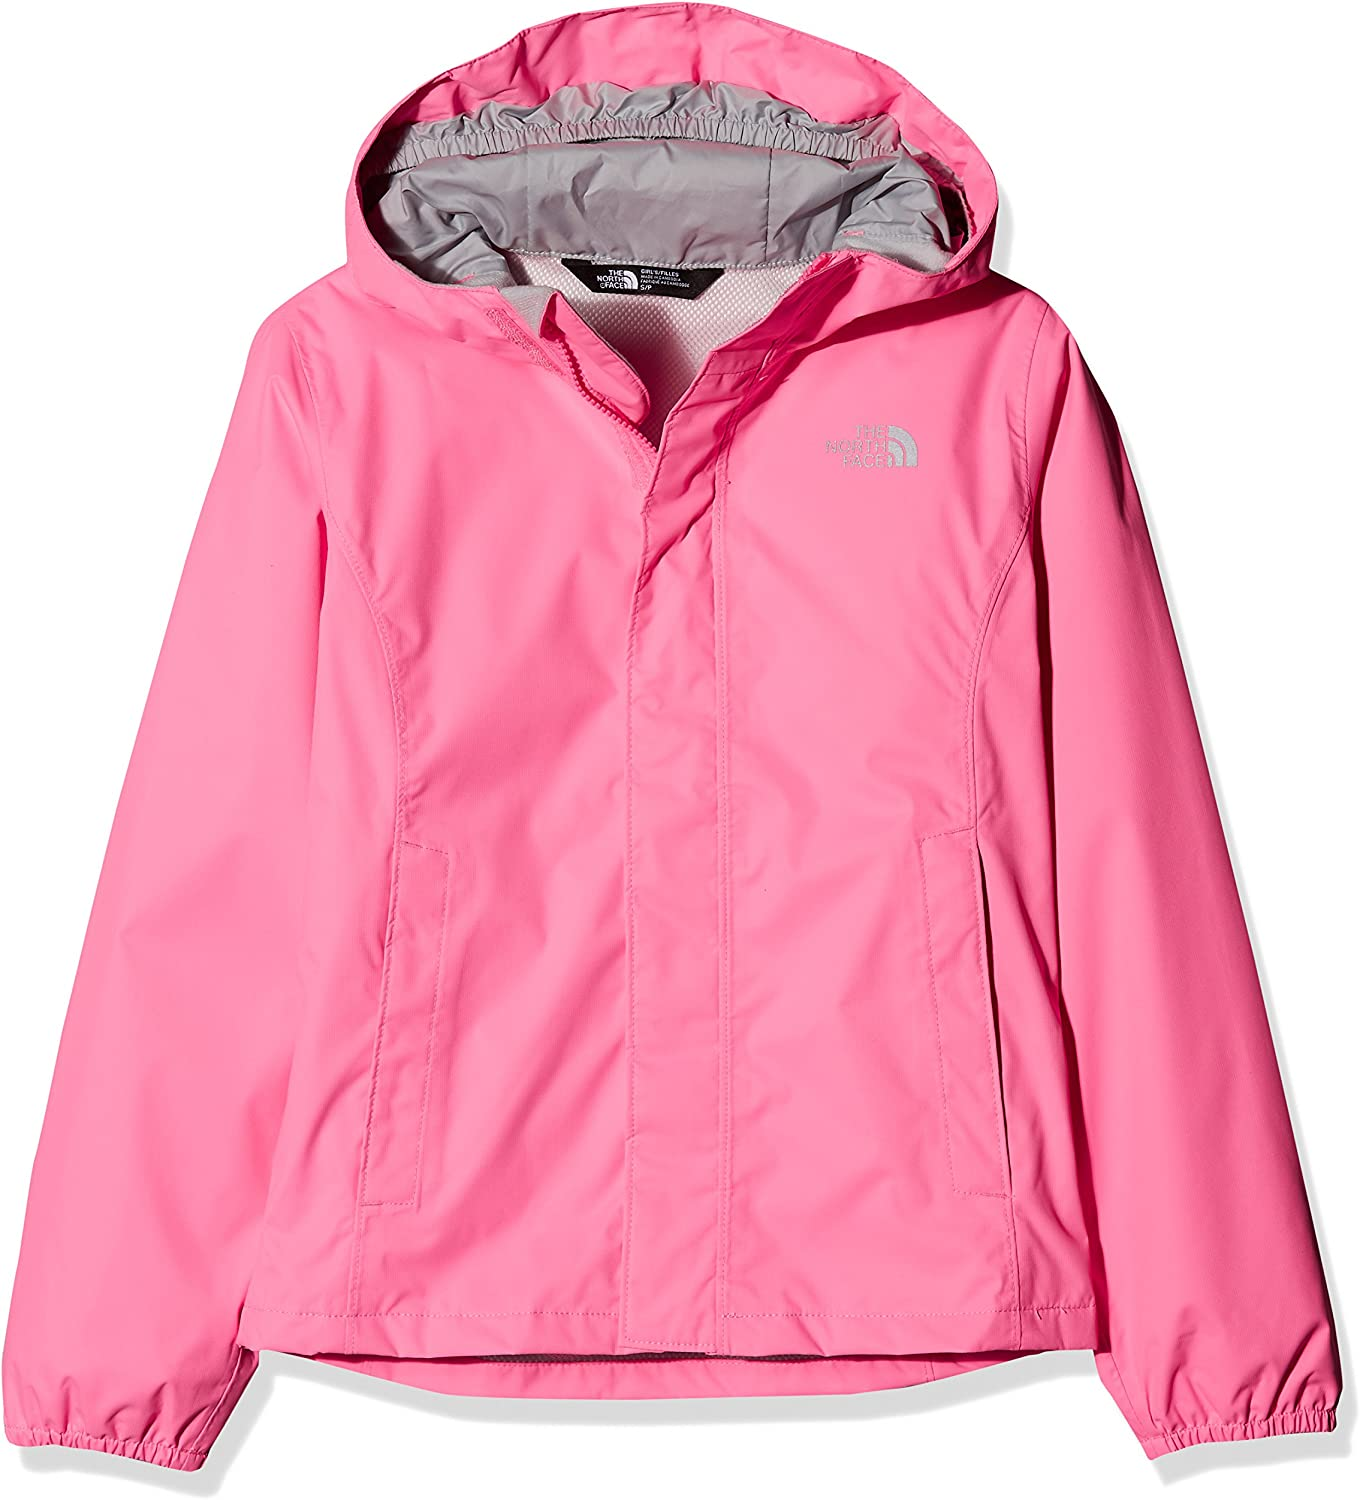 Giacca Riflettente Bambina The North Face G Resolve Ref Jkt